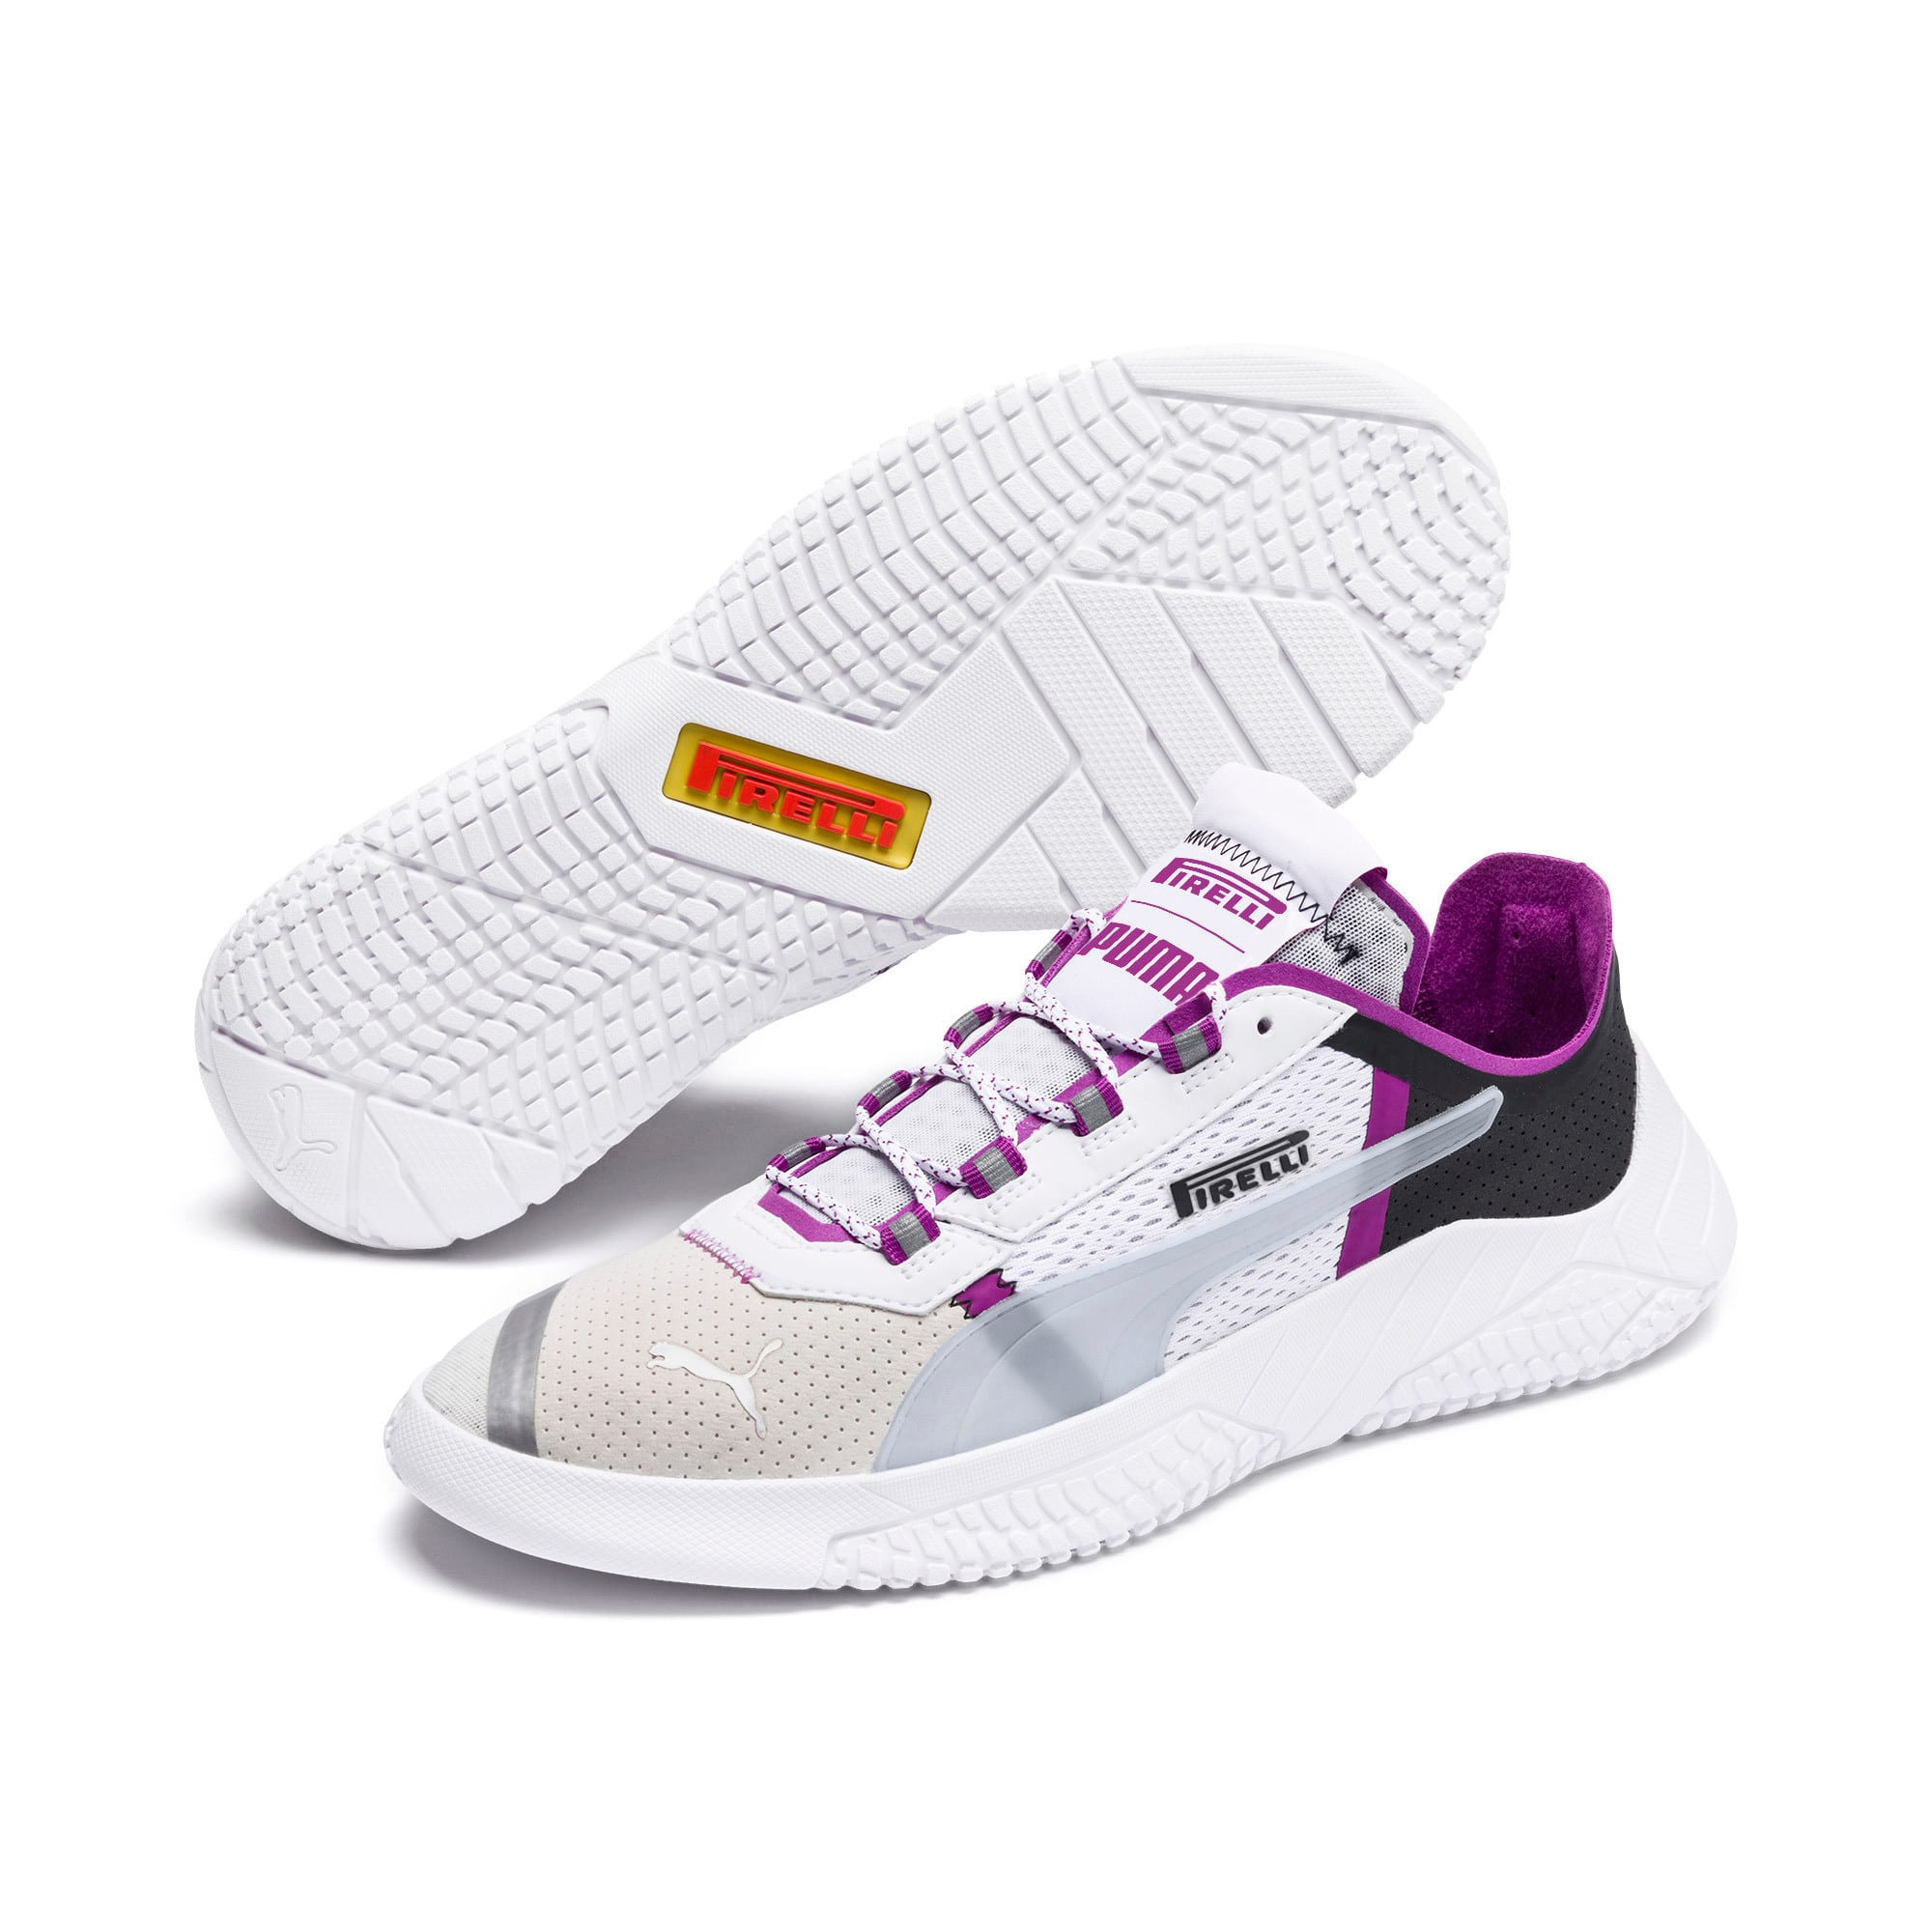 Thumbnail 3 of Scarpe da ginnastica Pirelli Replicat-X, White-Hyacinth Viol-Red, medium